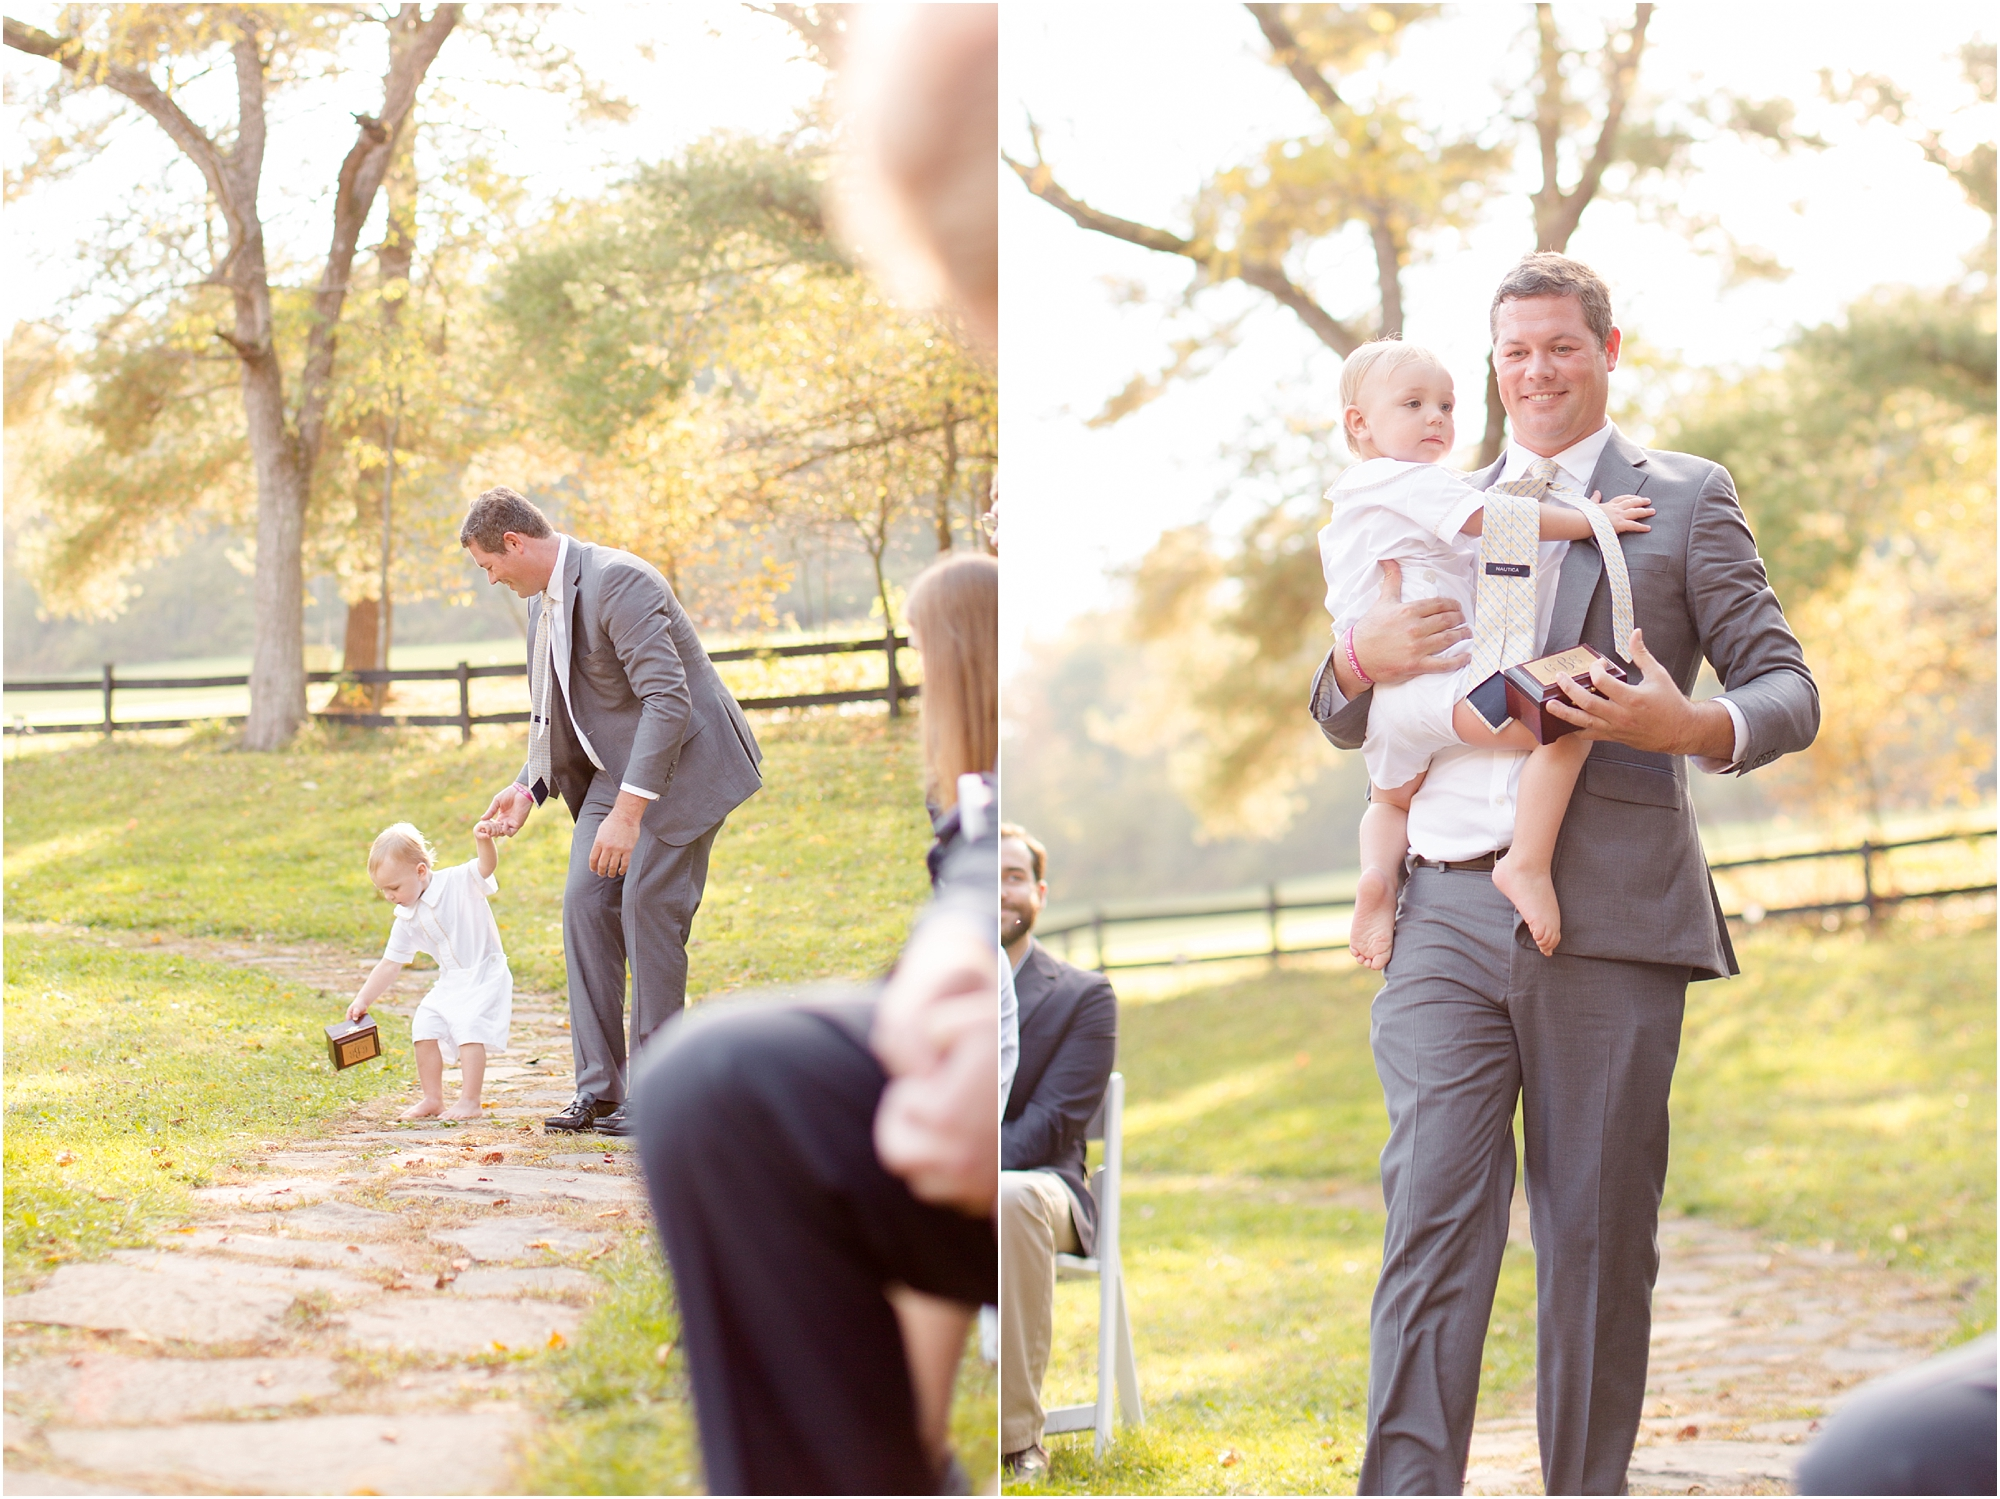 The cutest little ring bearer! Too much pressure for the little guy.